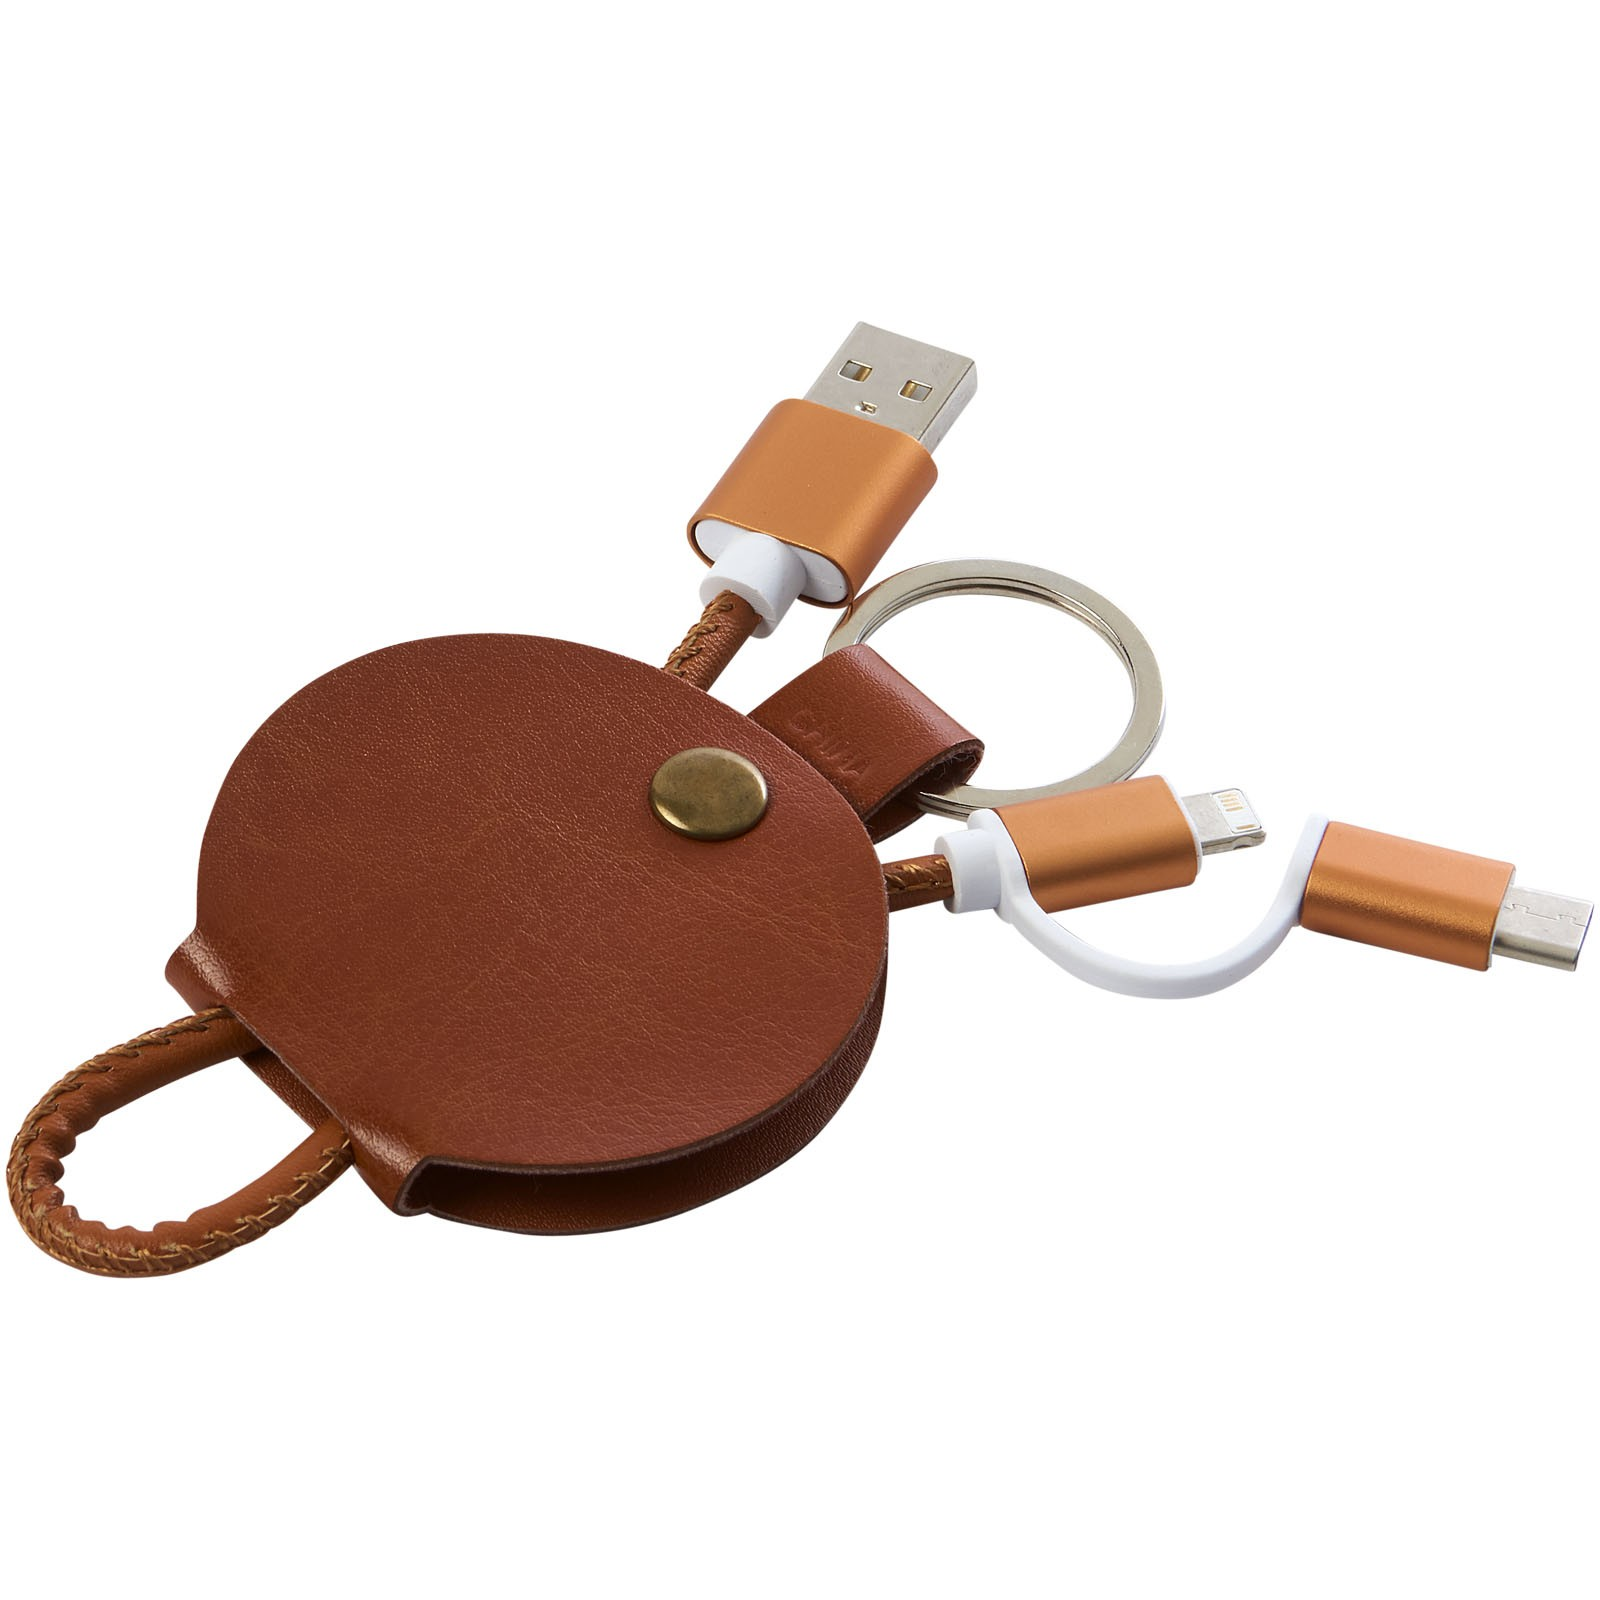 Gist 3-in-1 charging cable - Brown